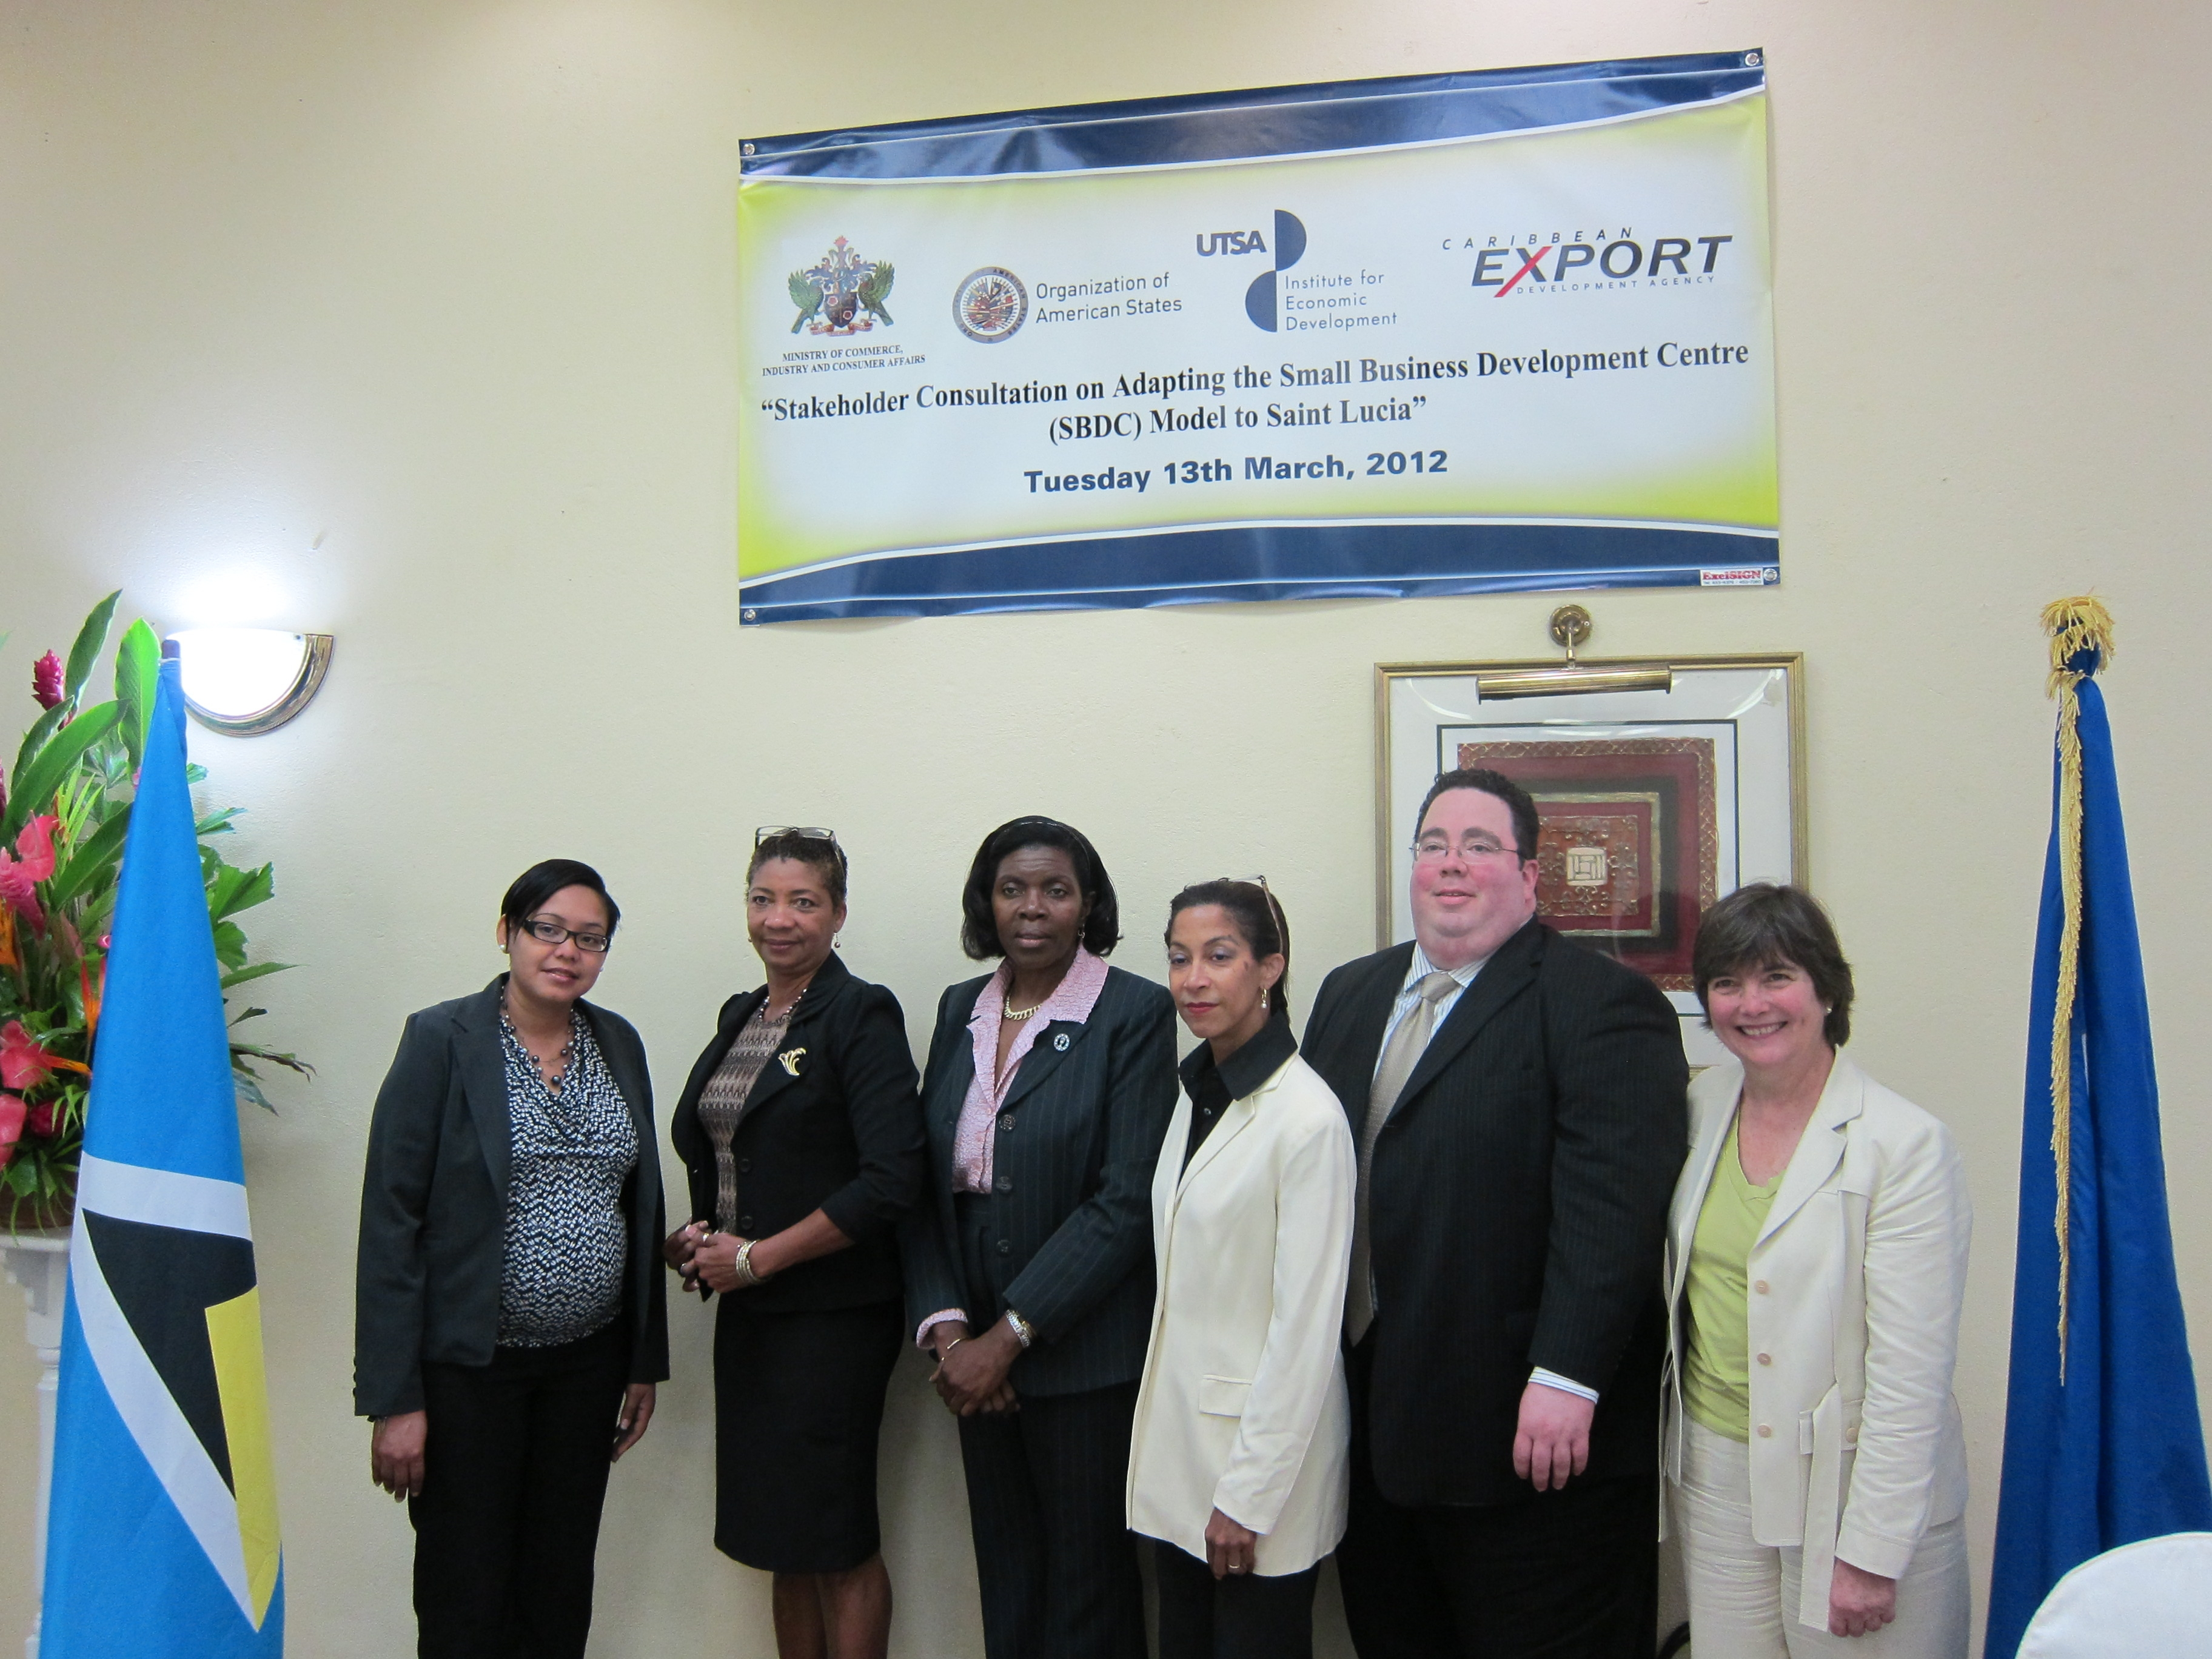 Stakeholder Consultation on Adapting the SBDC Model to Saint Lucia